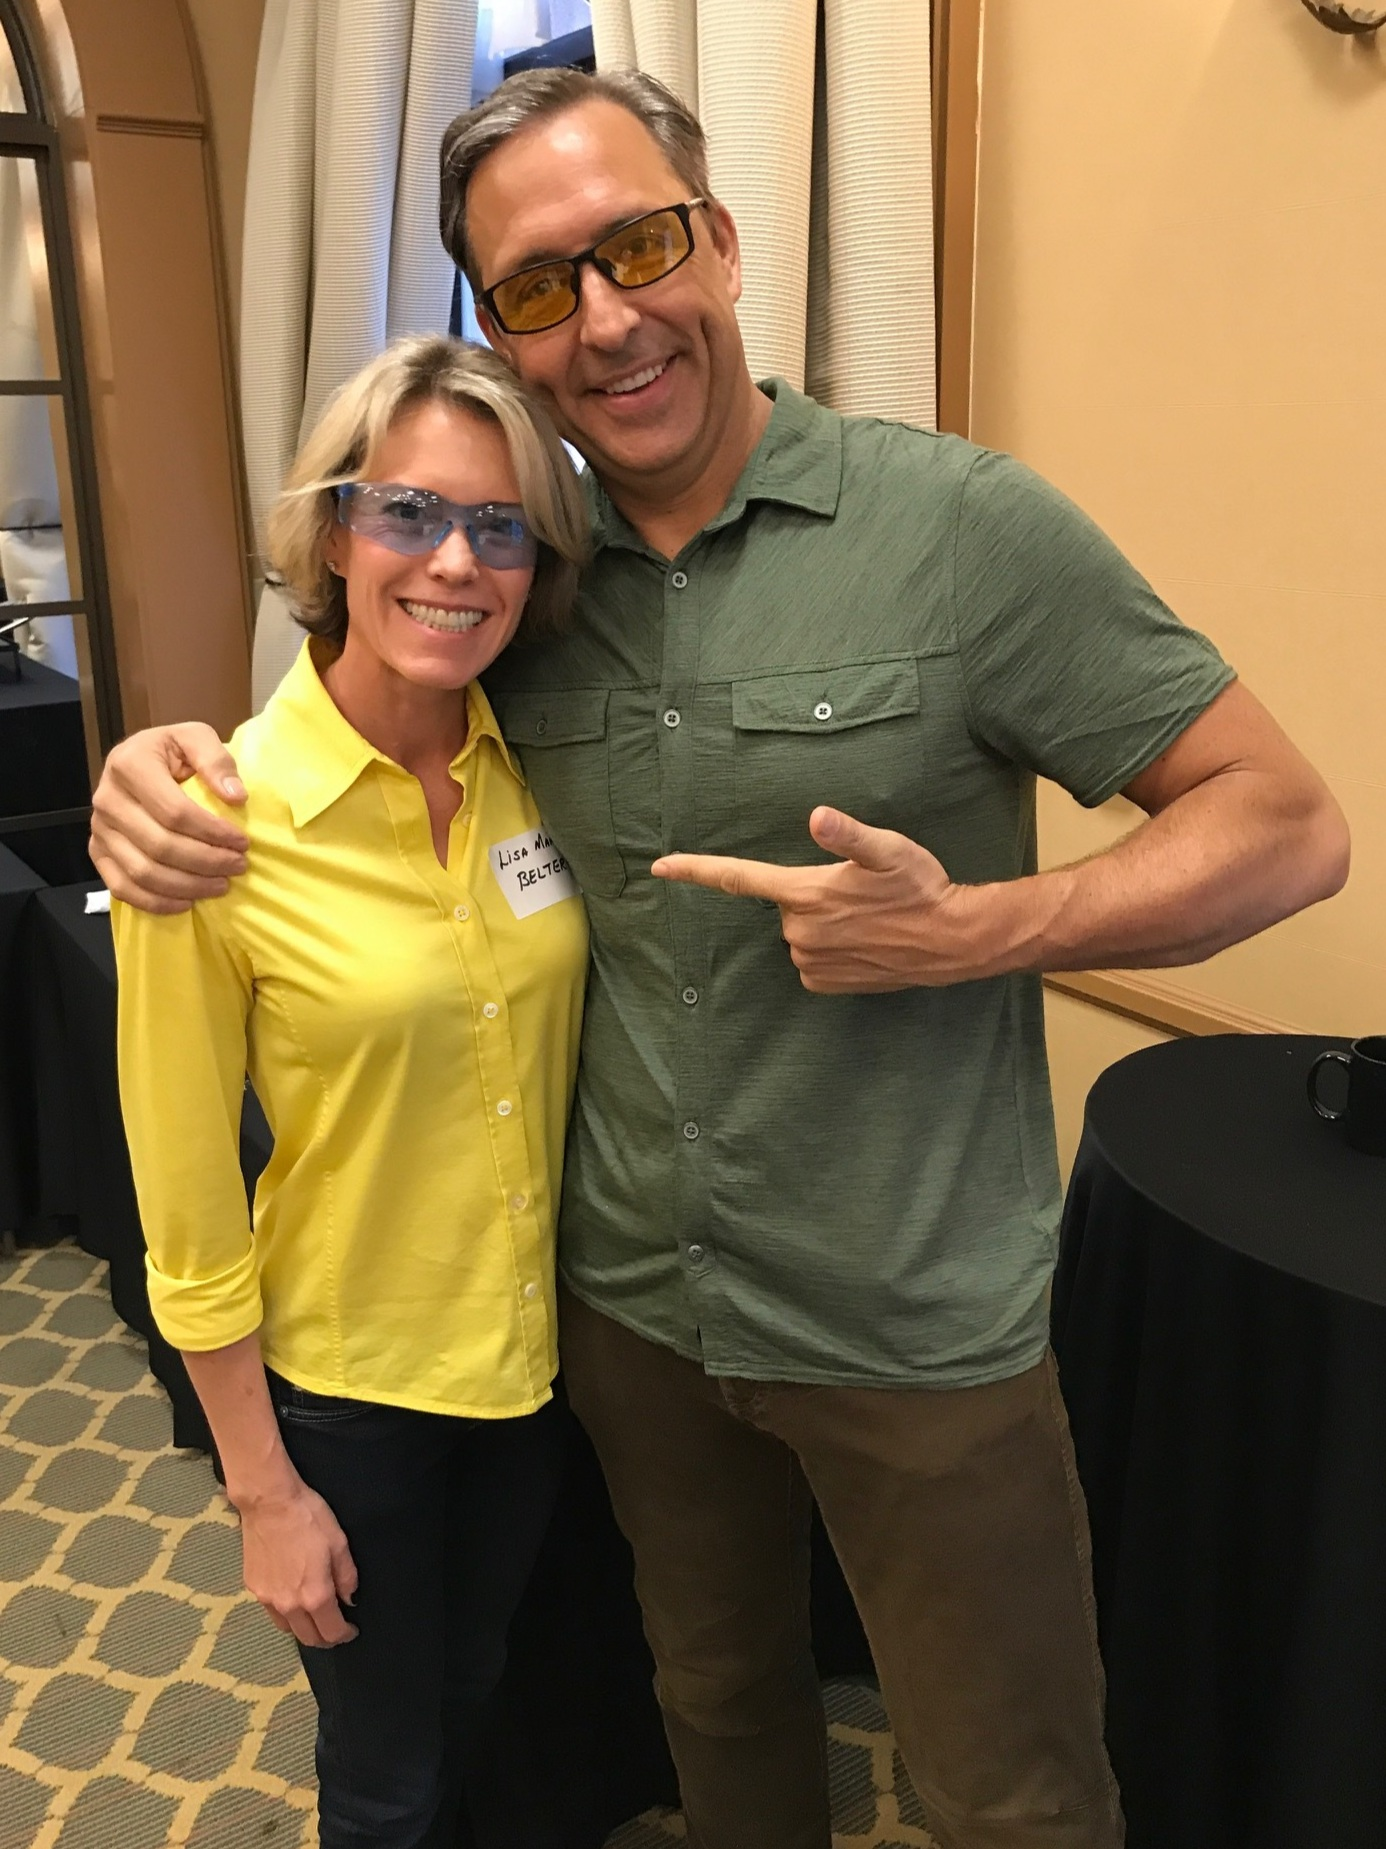 Lisa Belter with Dave Asprey (Bulletproof and Upgrade Labs)